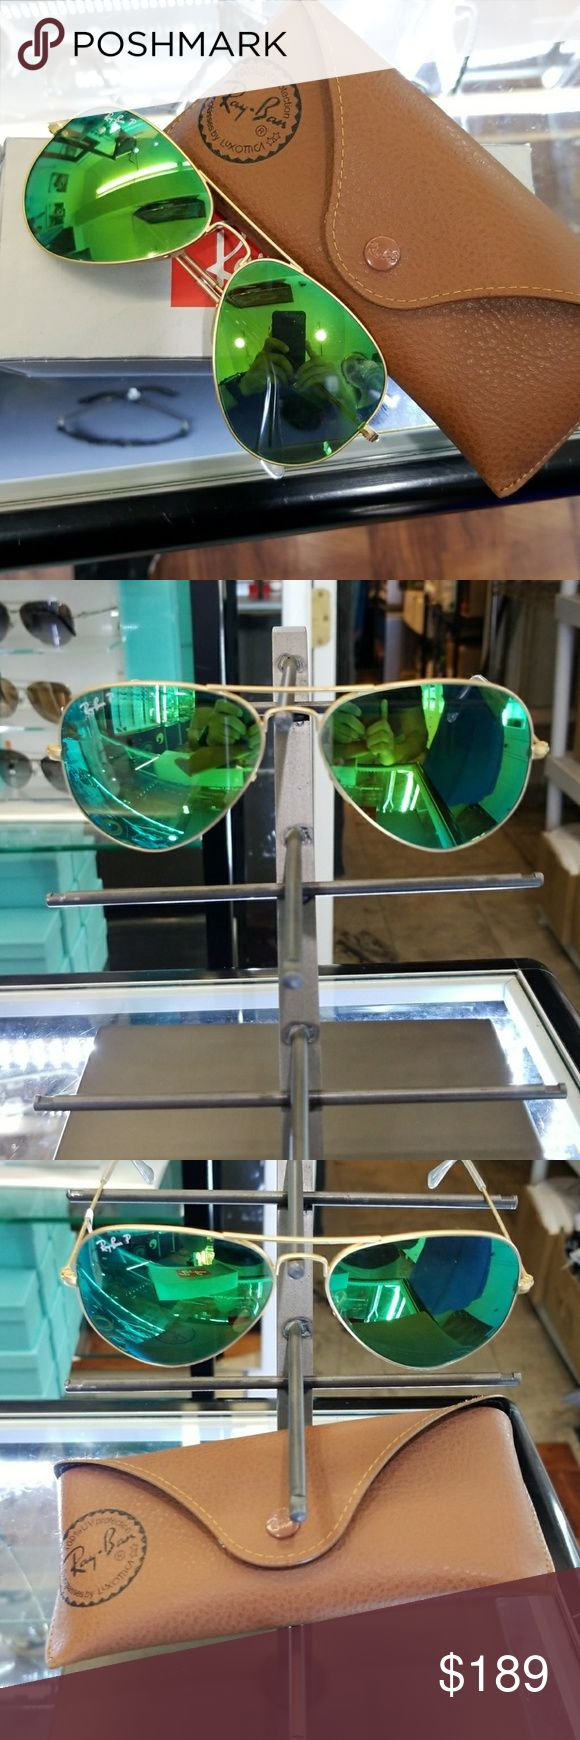 Ray ban sunglasses 3025 green polarized lens 3025 aviators polarized lens size 58 authentic with warranty Ray-Ban Accessories Sunglasses